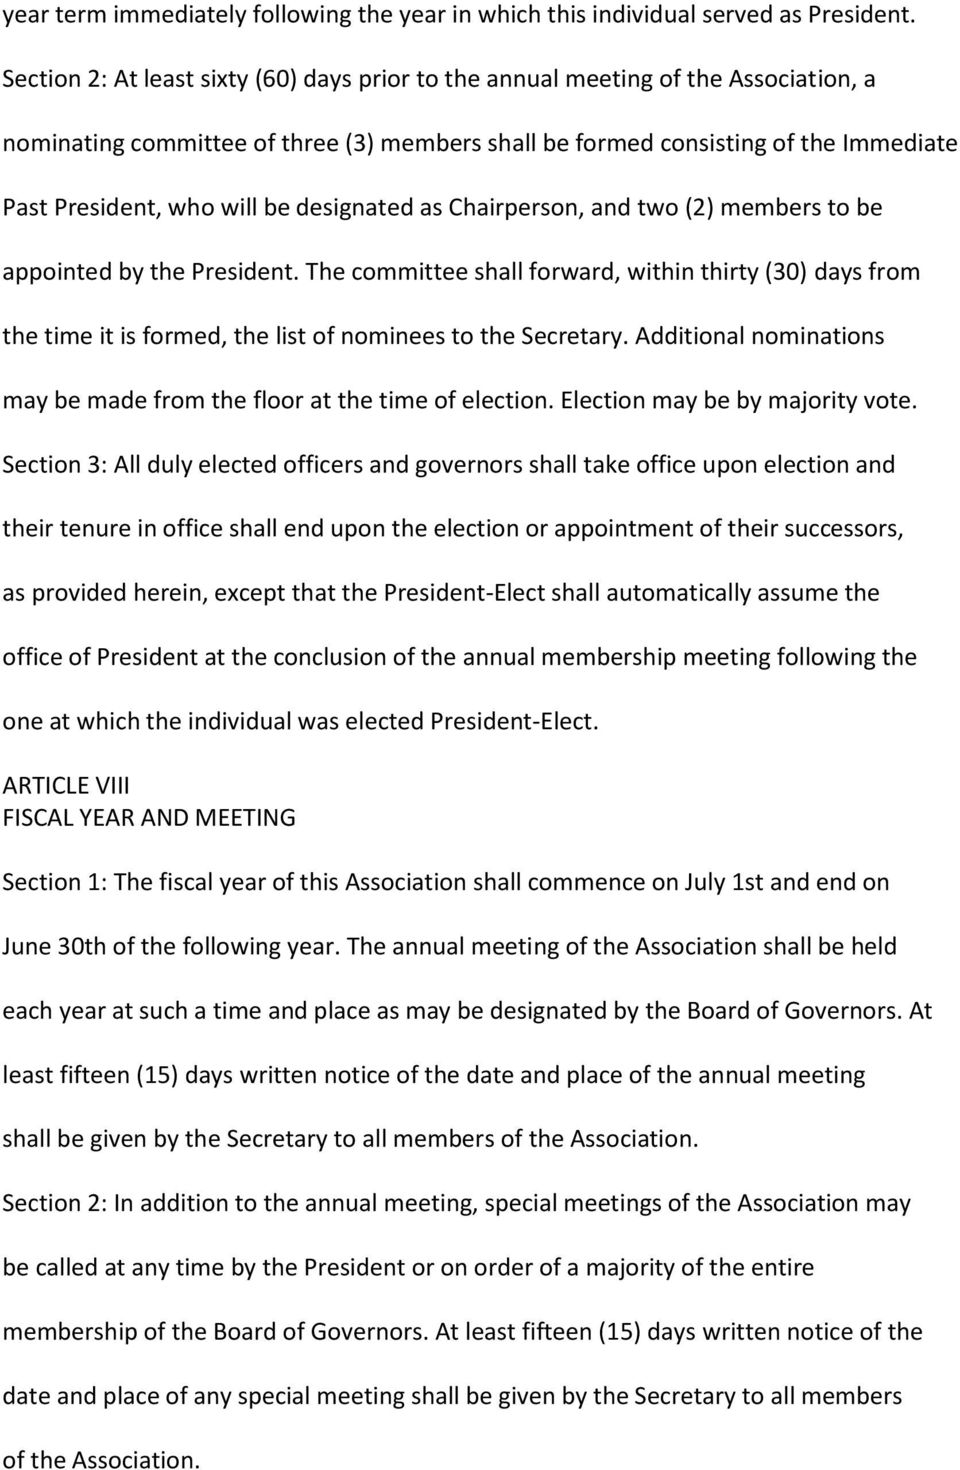 designated as Chairperson, and two (2) members to be appointed by the President. The committee shall forward, within thirty (30) days from the time it is formed, the list of nominees to the Secretary.